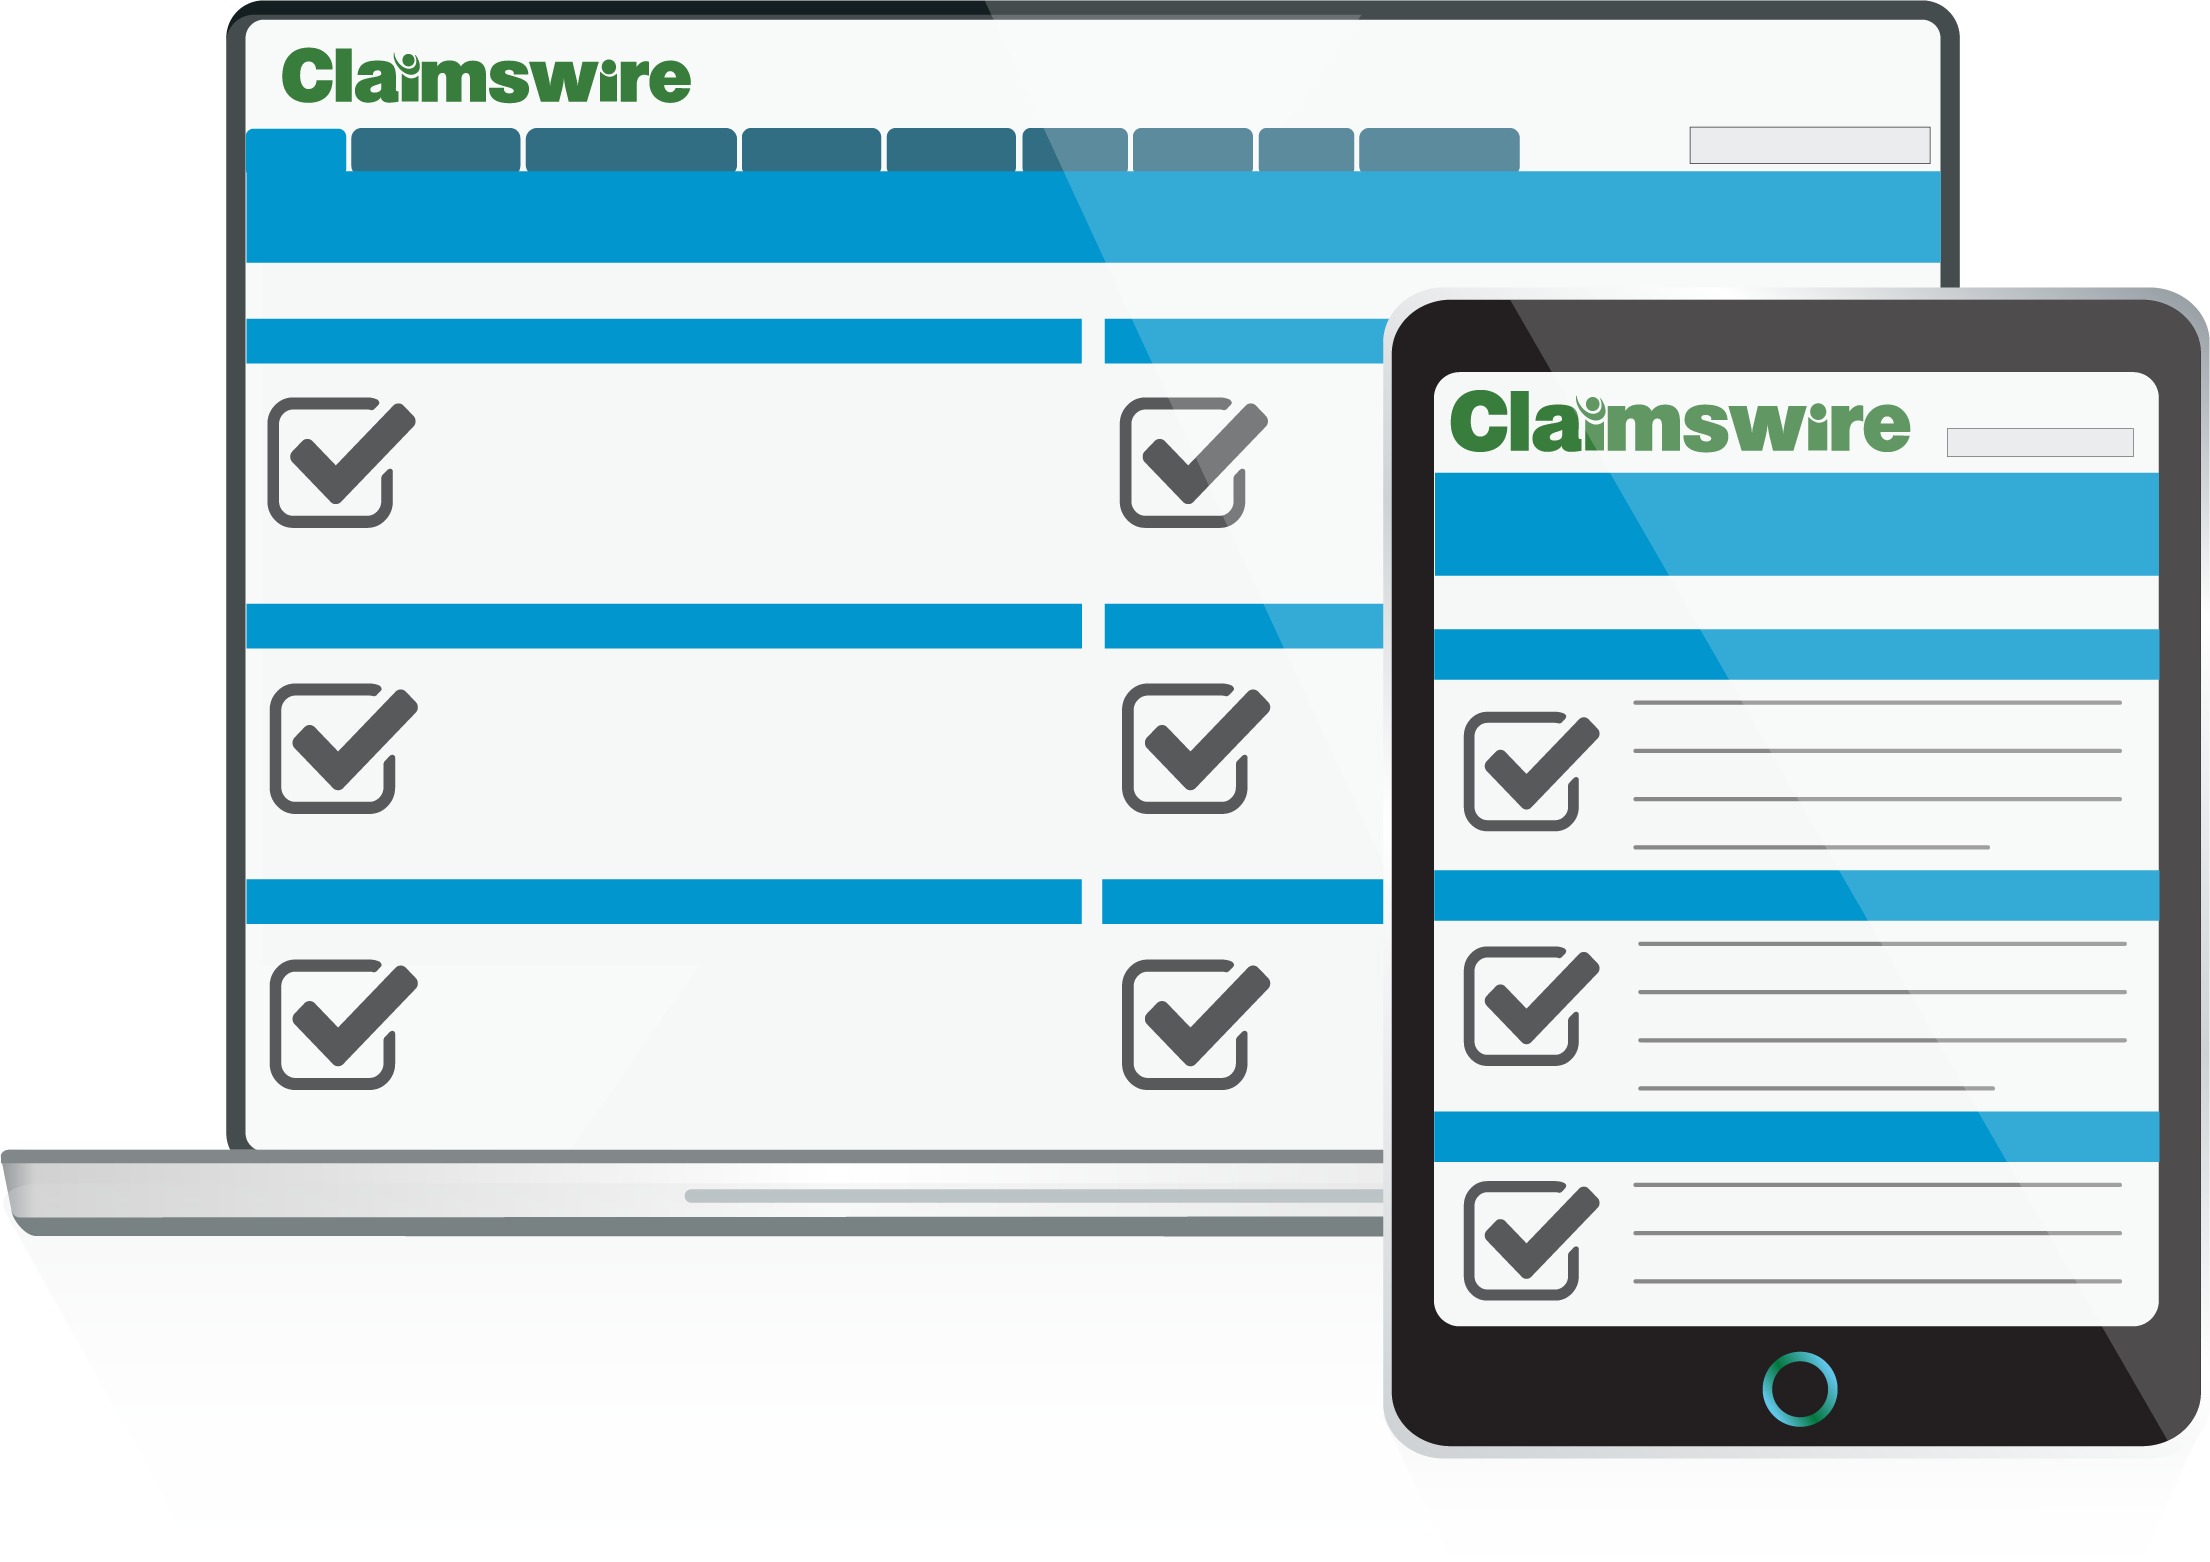 effective claims management claimswire best claims processing platform simsol